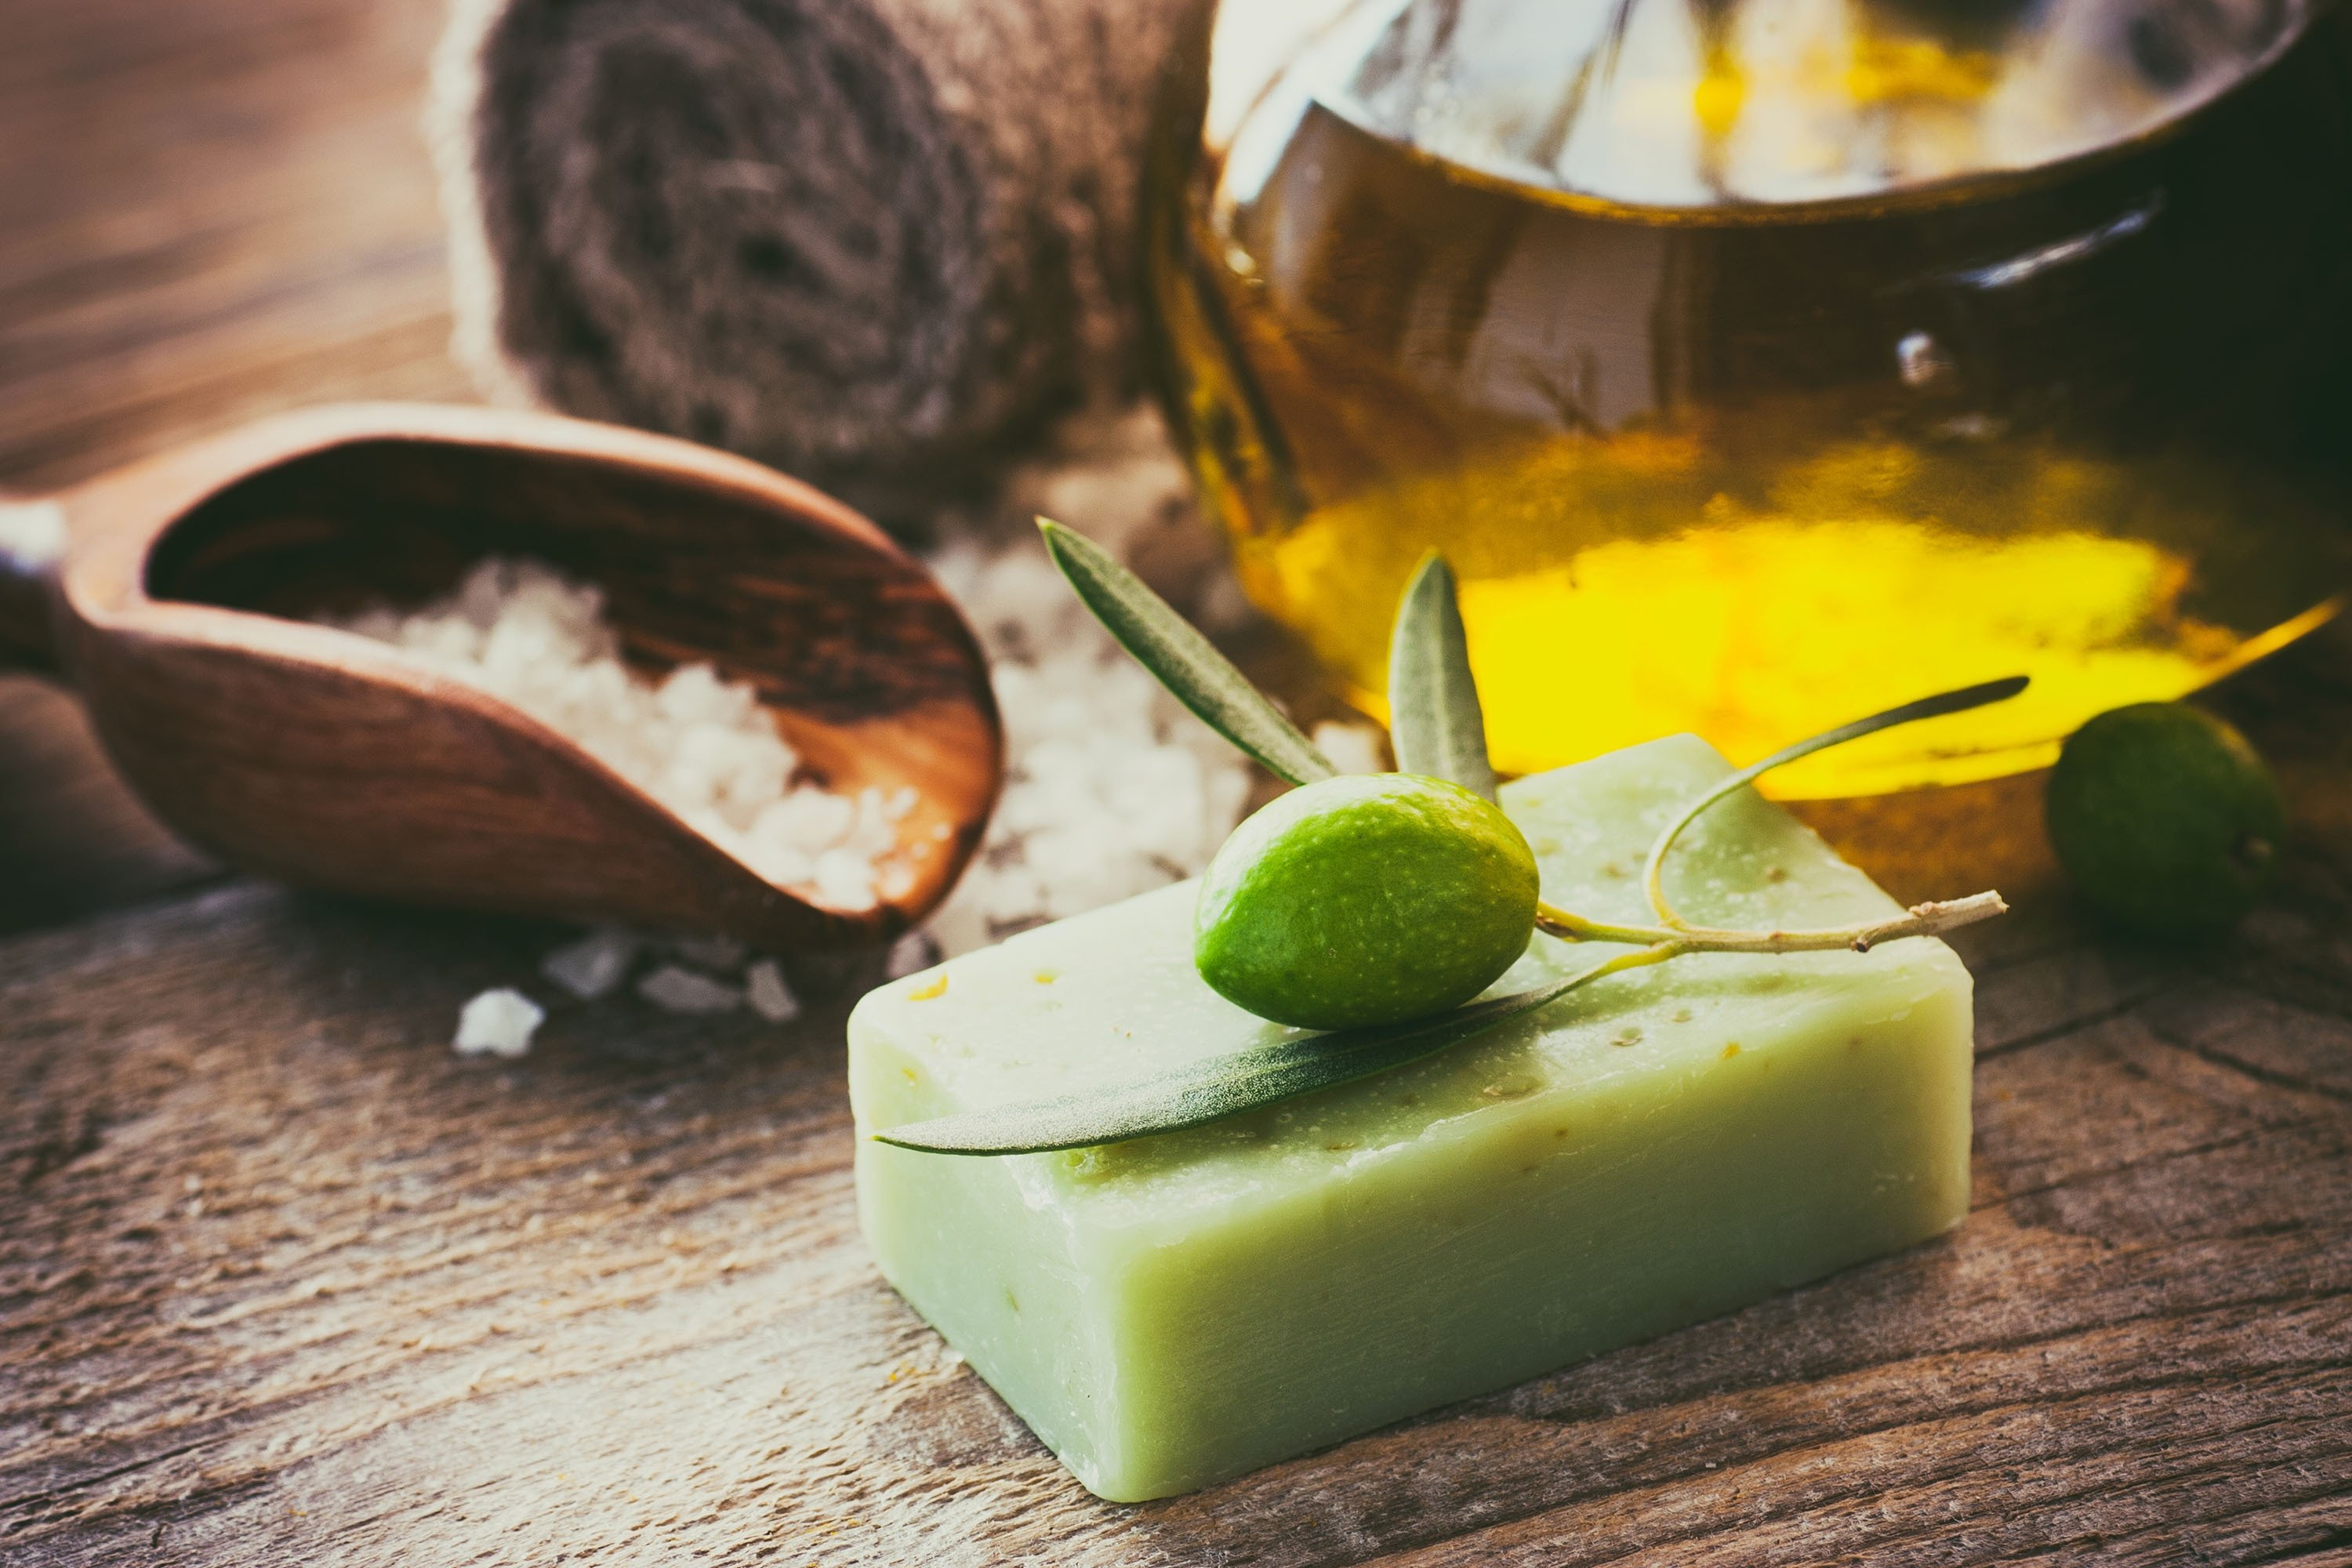 Colorless and scentless soaps like olive oil should be preferred for hand washing as they won't strip the skin's natural oils. (Shutterstock Photo)